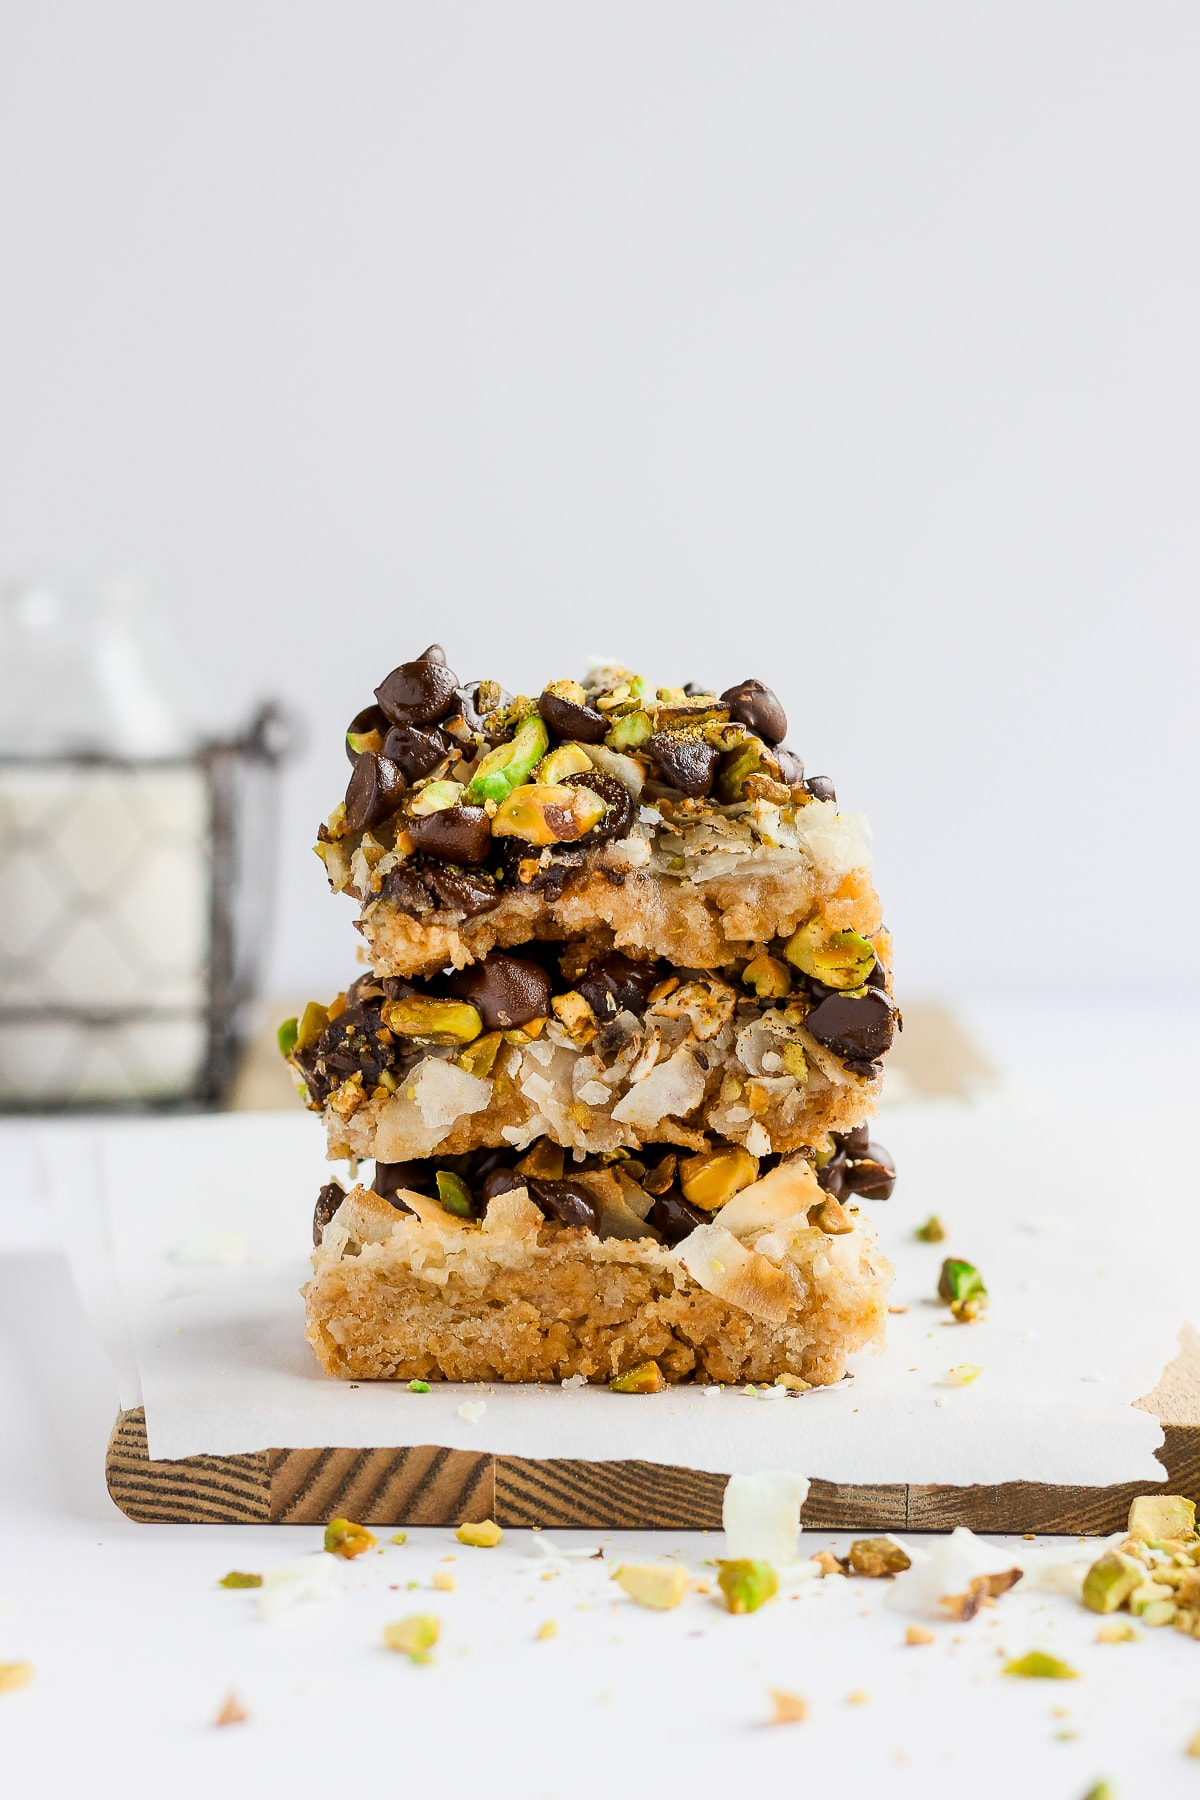 Pistachio Seven Layer Cookie Bars (Dairy-Free and Vegan) - a delicious and healthier version of the classic seven layer bar! #vegan #dairyfree